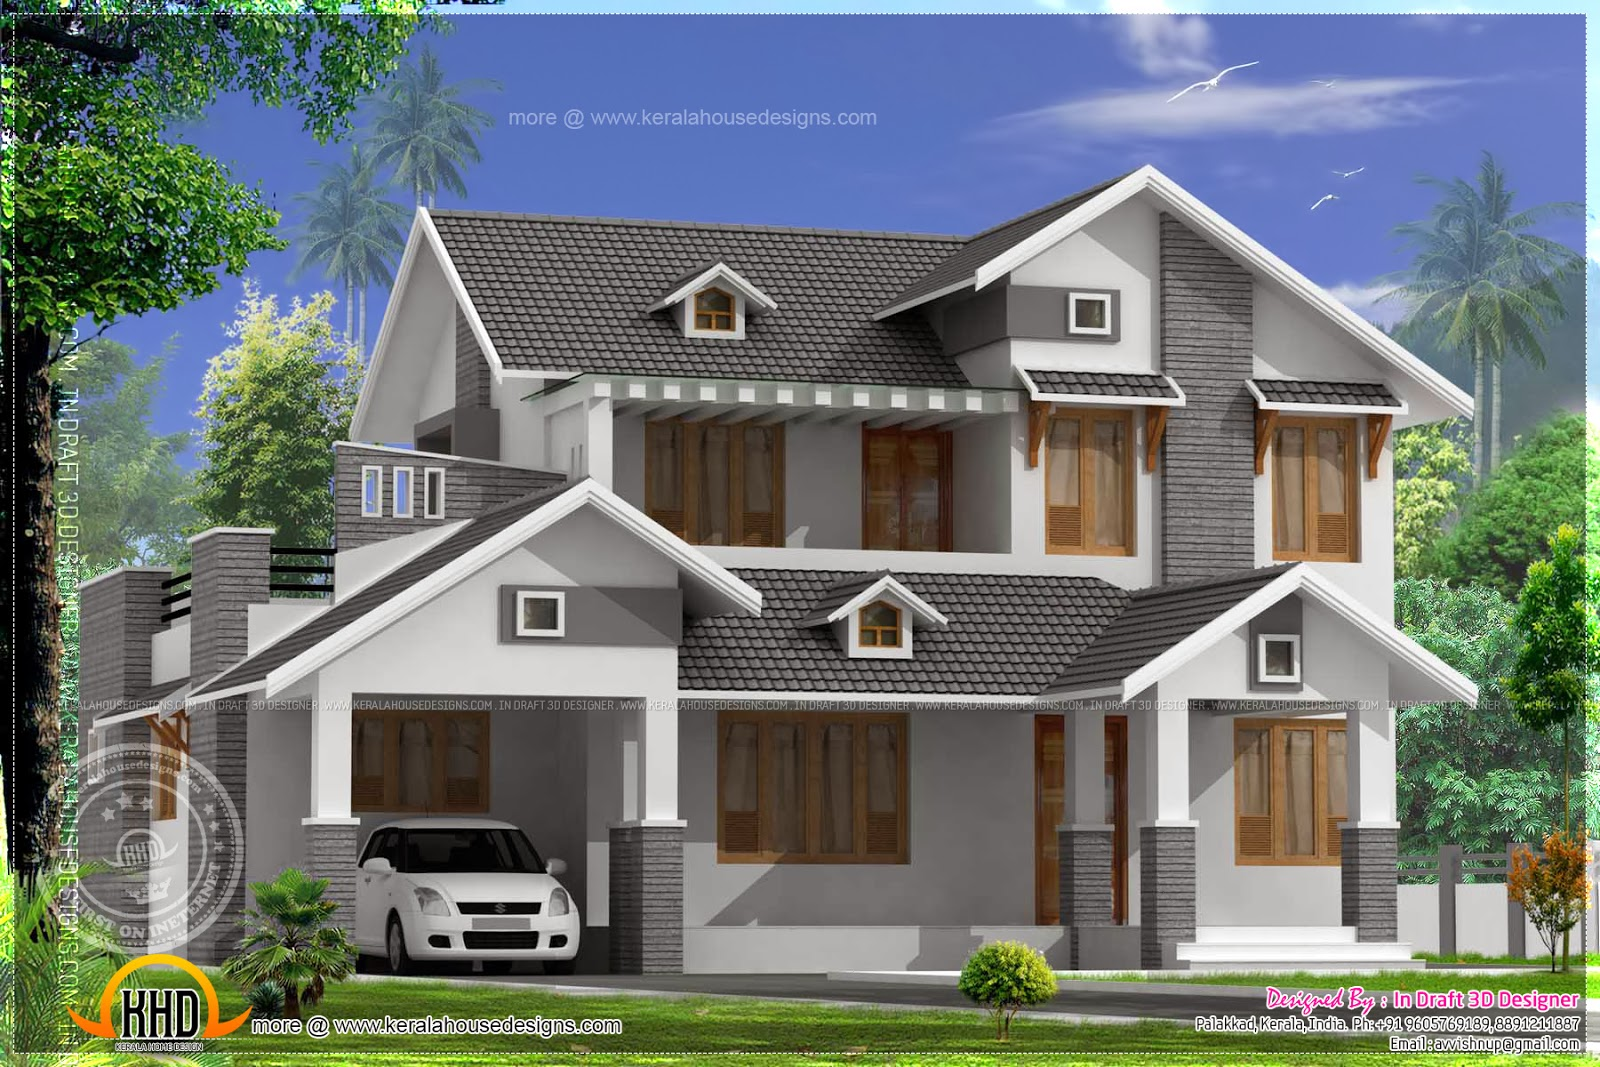 Pitched Roof House Plans